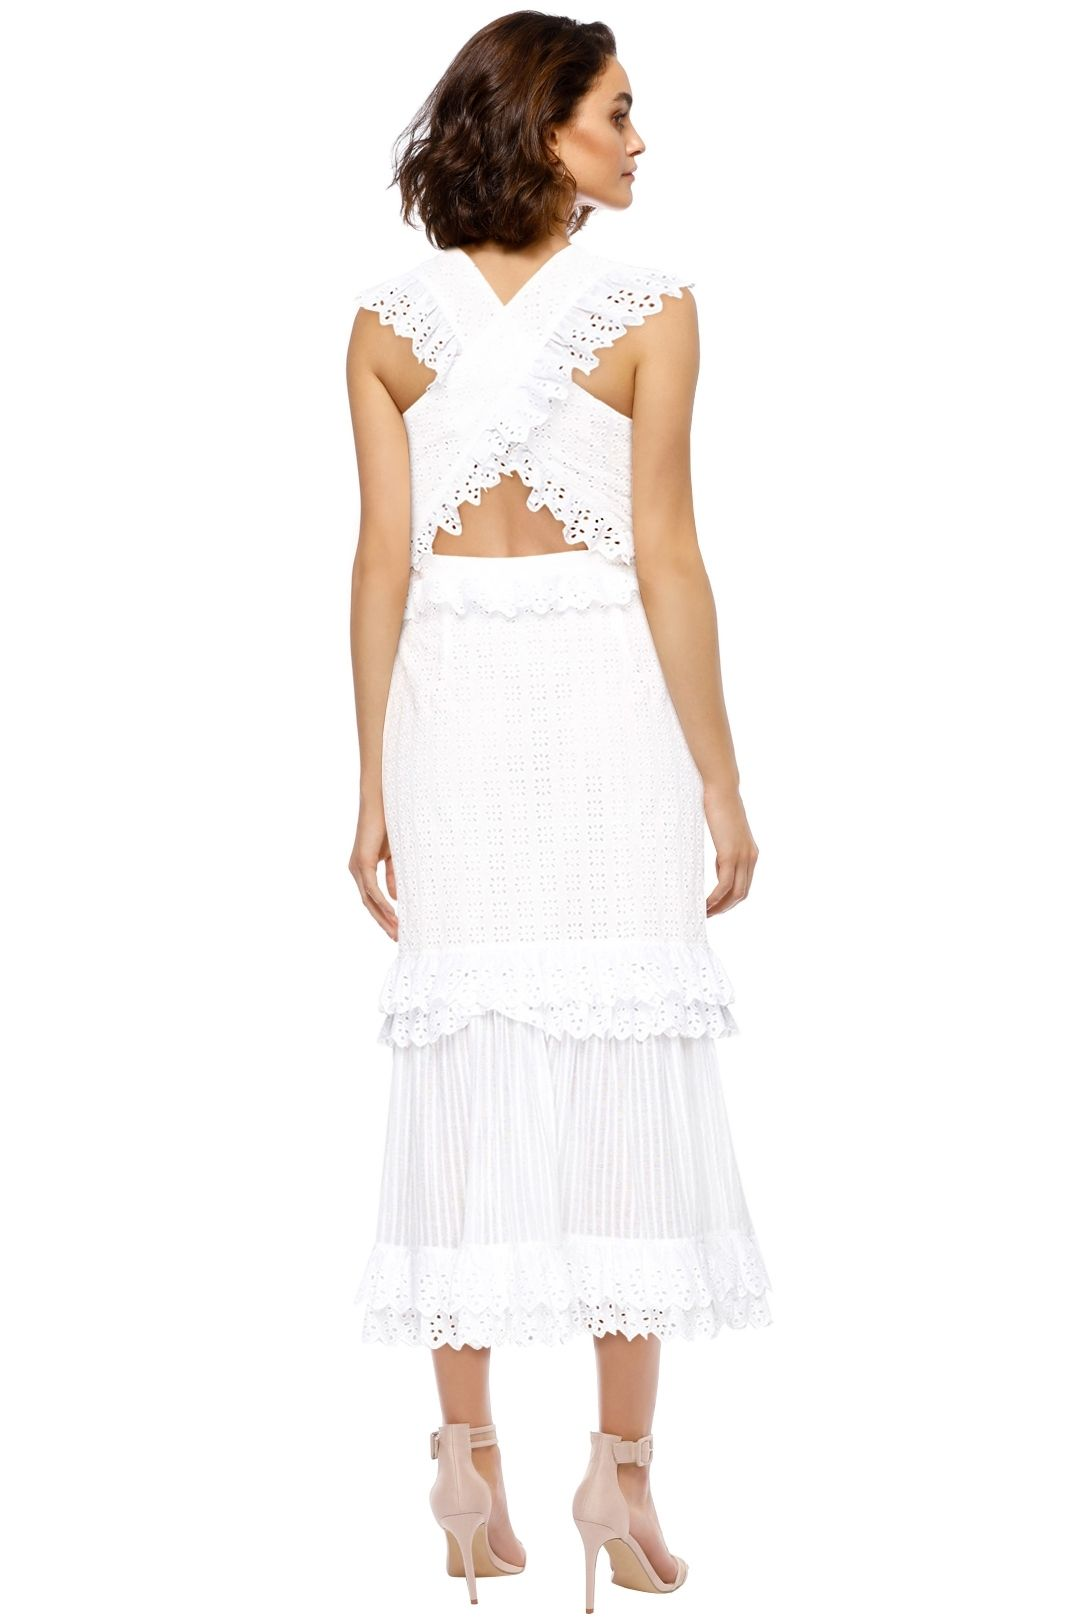 Alice McCall - Everything She Wants Dress - Porcelain White - Back